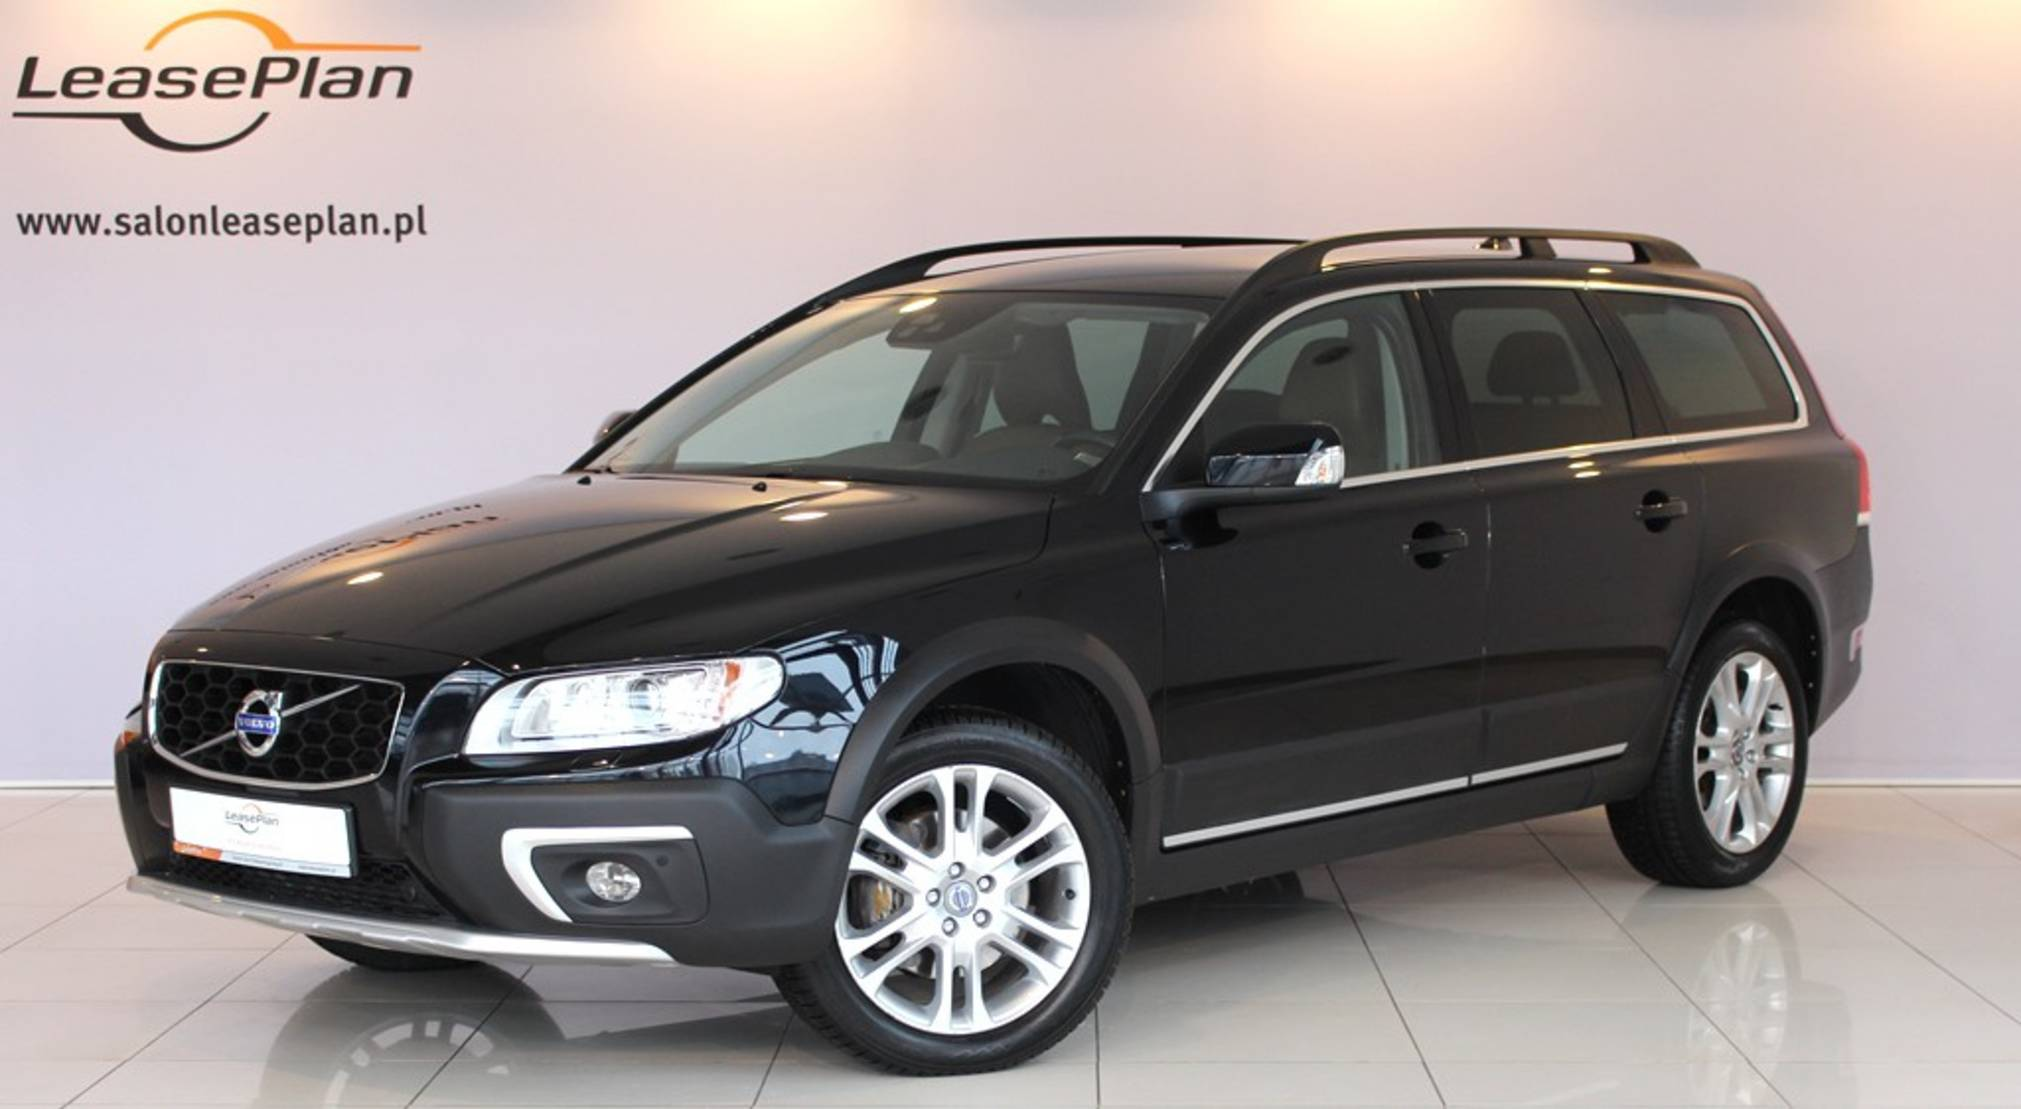 Volvo XC70 D4 AWD Geartronic, Summum detail1